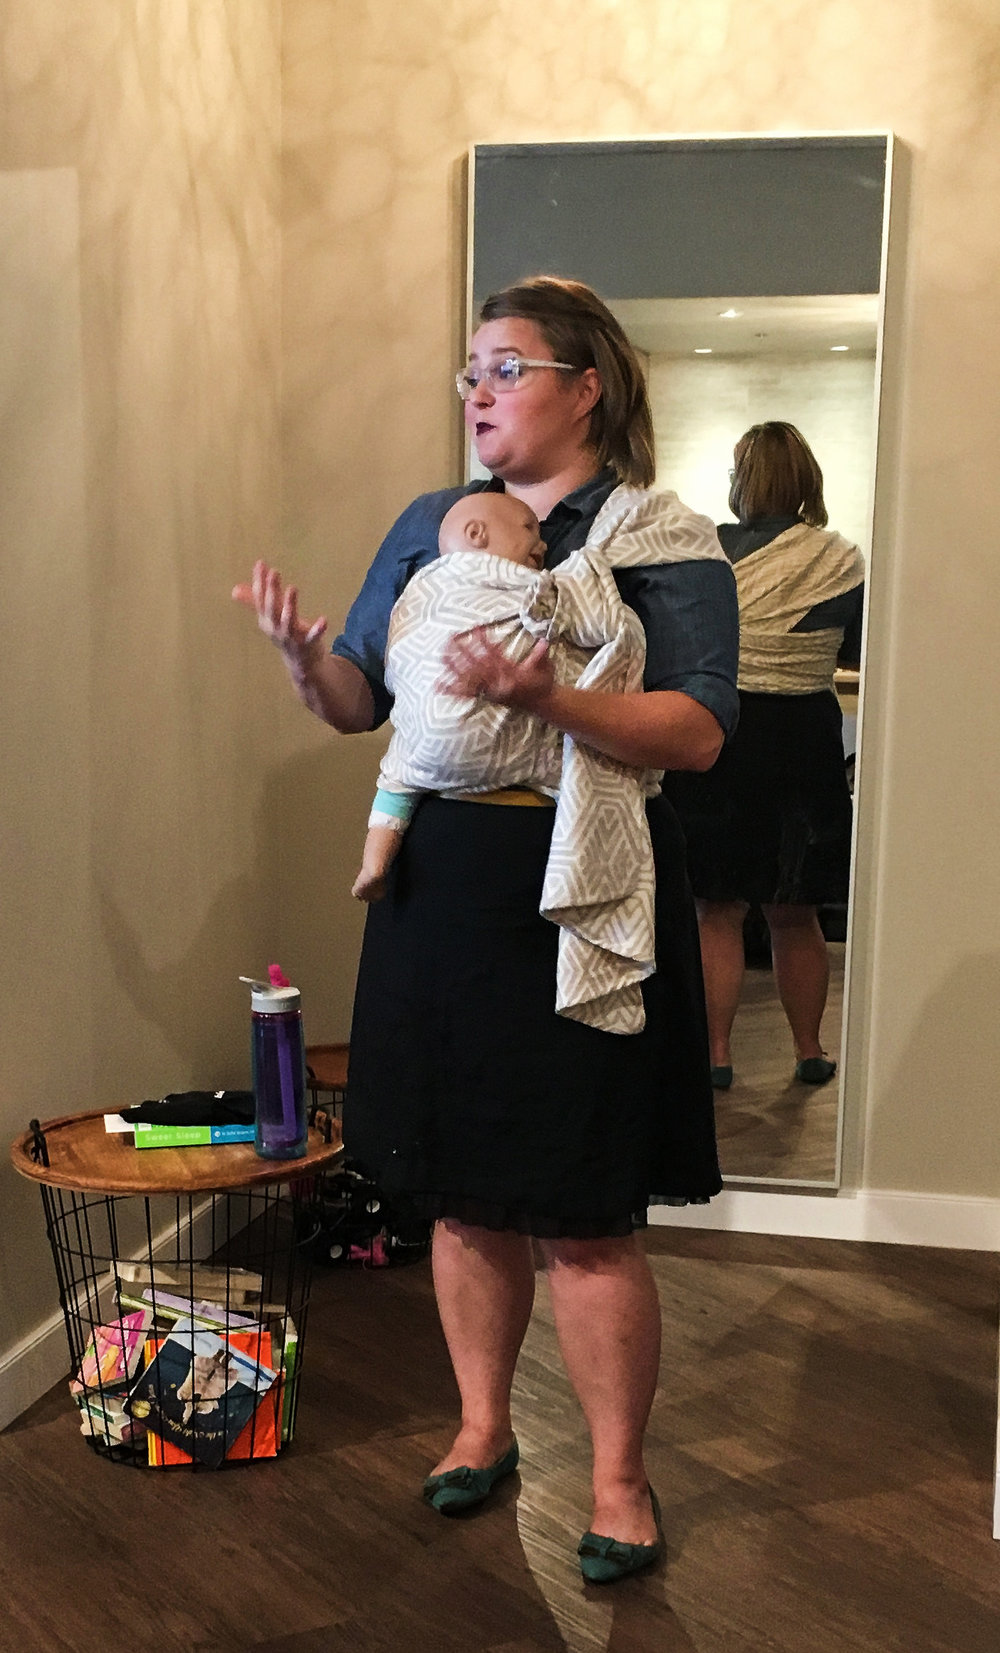 Photo by Shoena Strudwick of Yo Mama Maternity [Image description: A white woman with shoulder-length brown hair wearing glasses stands with her back to a full-length mirror. She is wearing a black skirt and has a baby wrapped on her front in a pale wrap.]